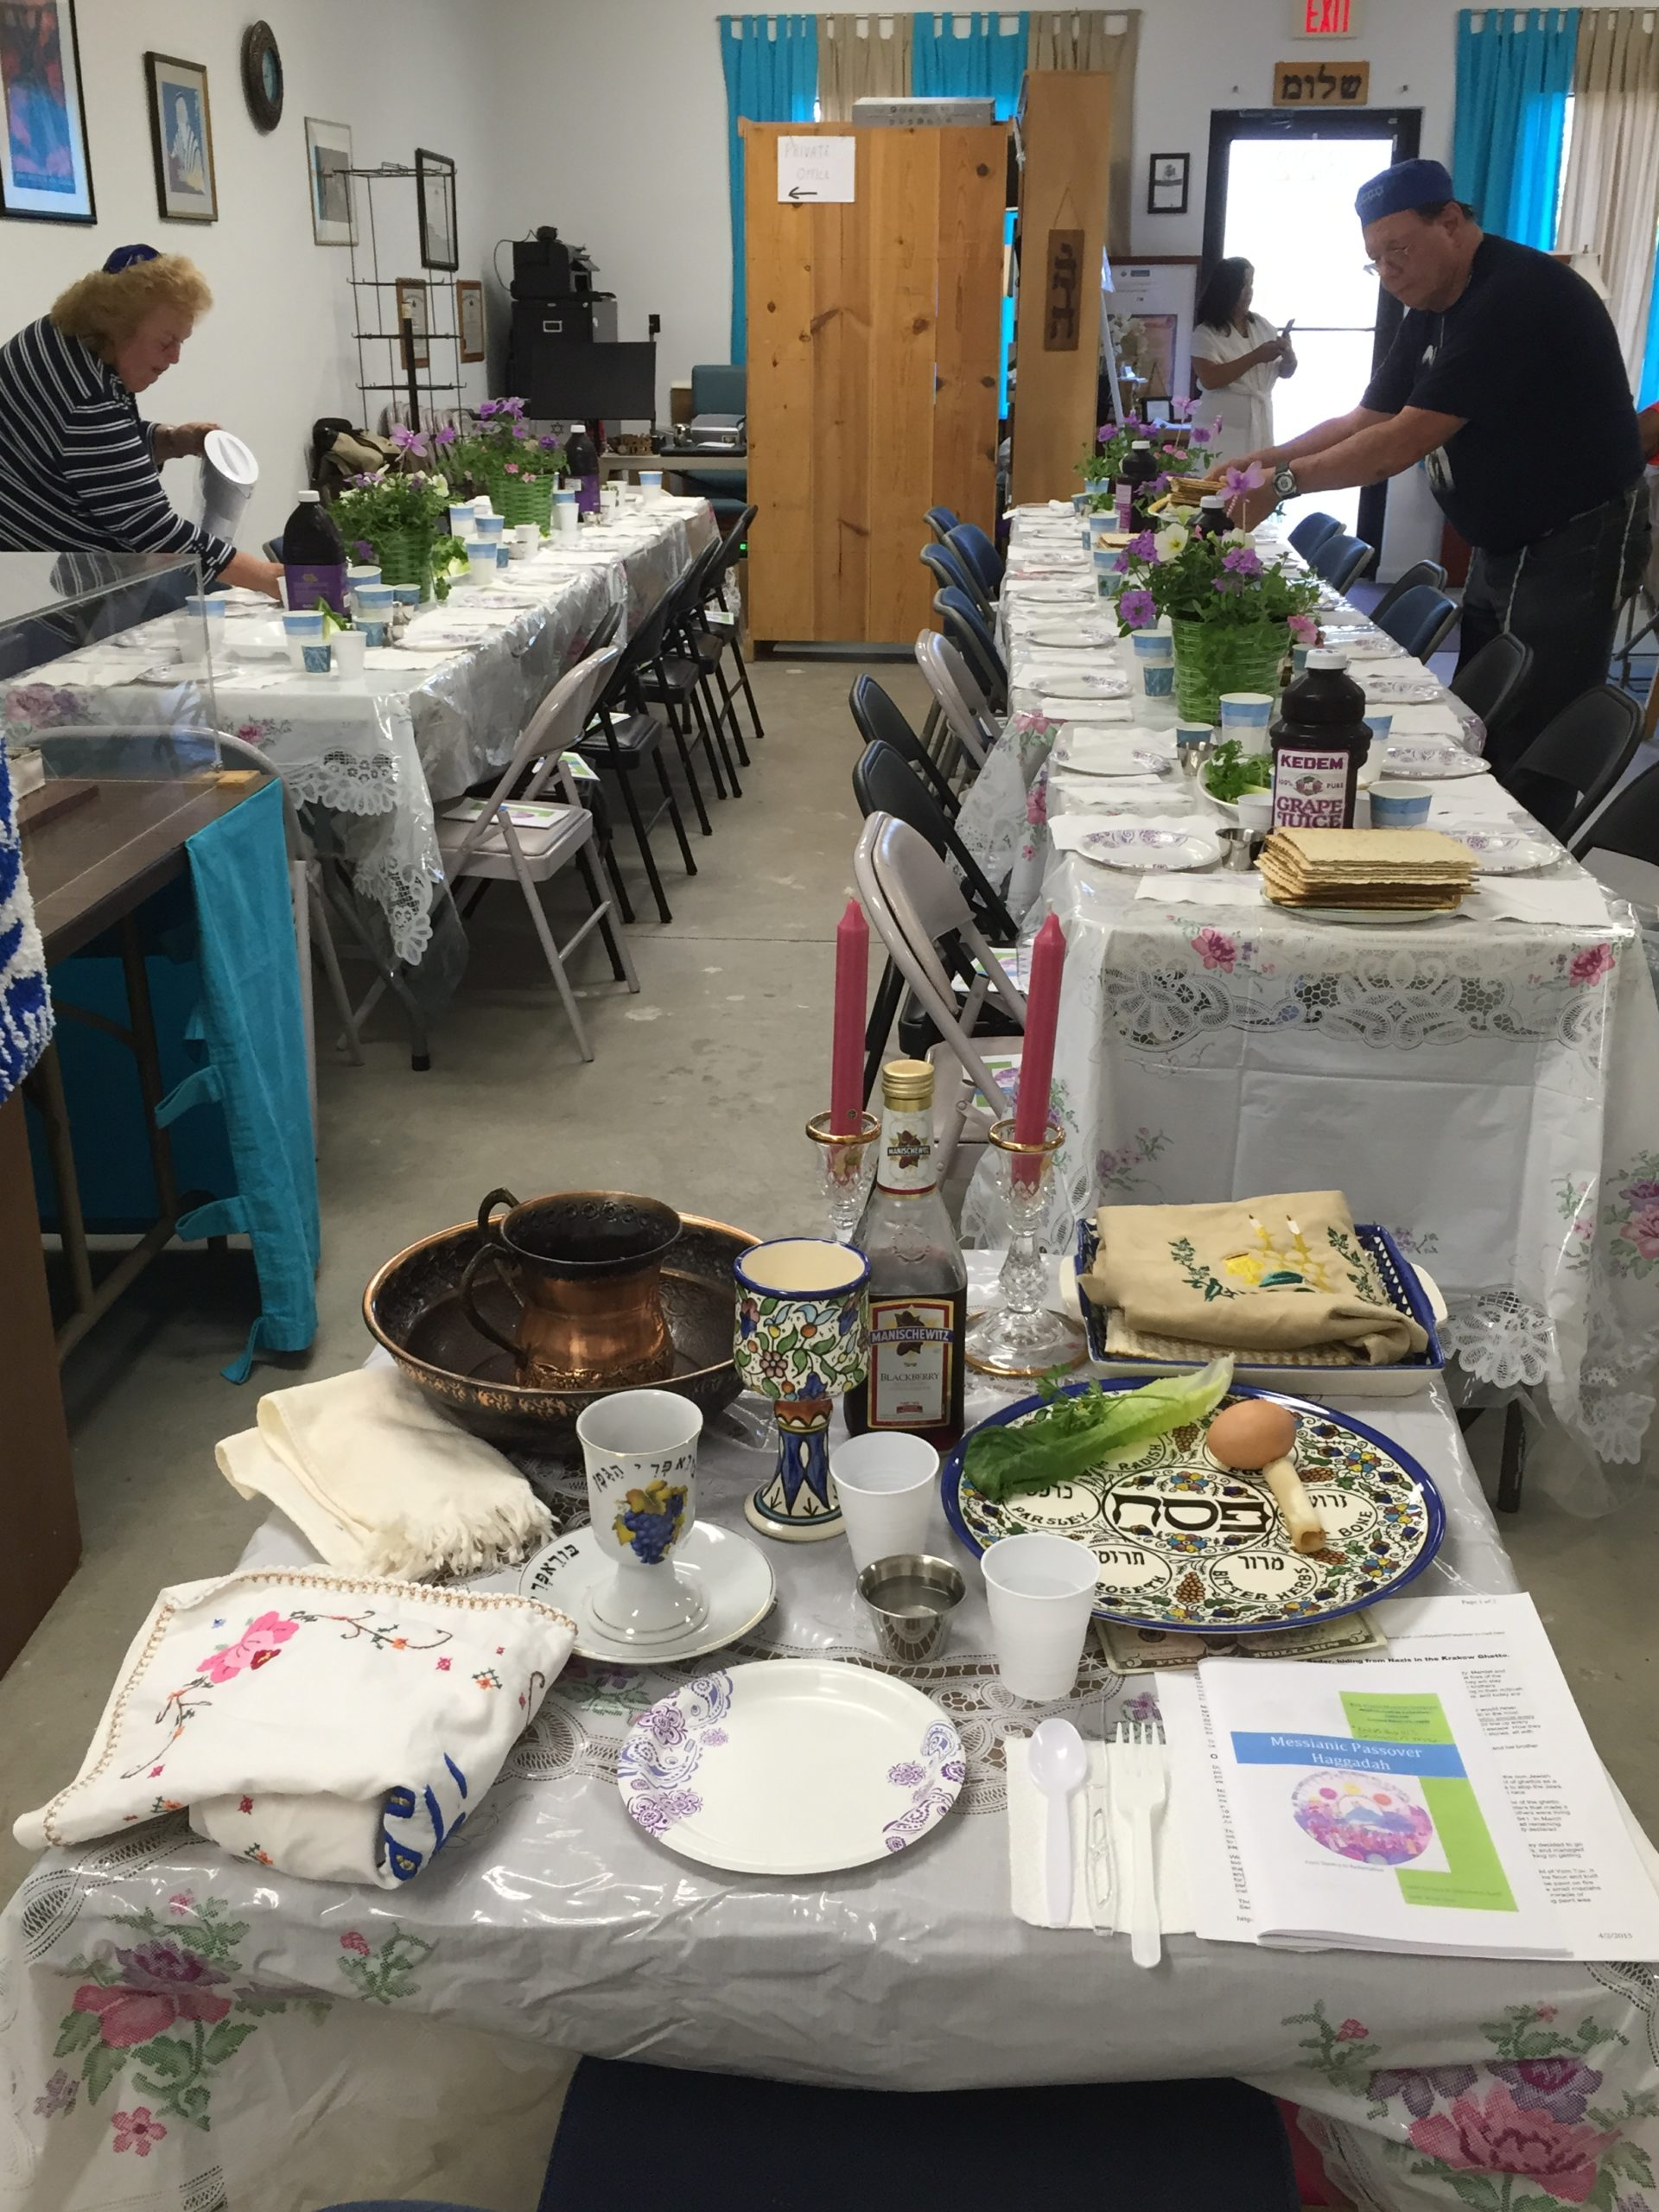 The Pesach Tables